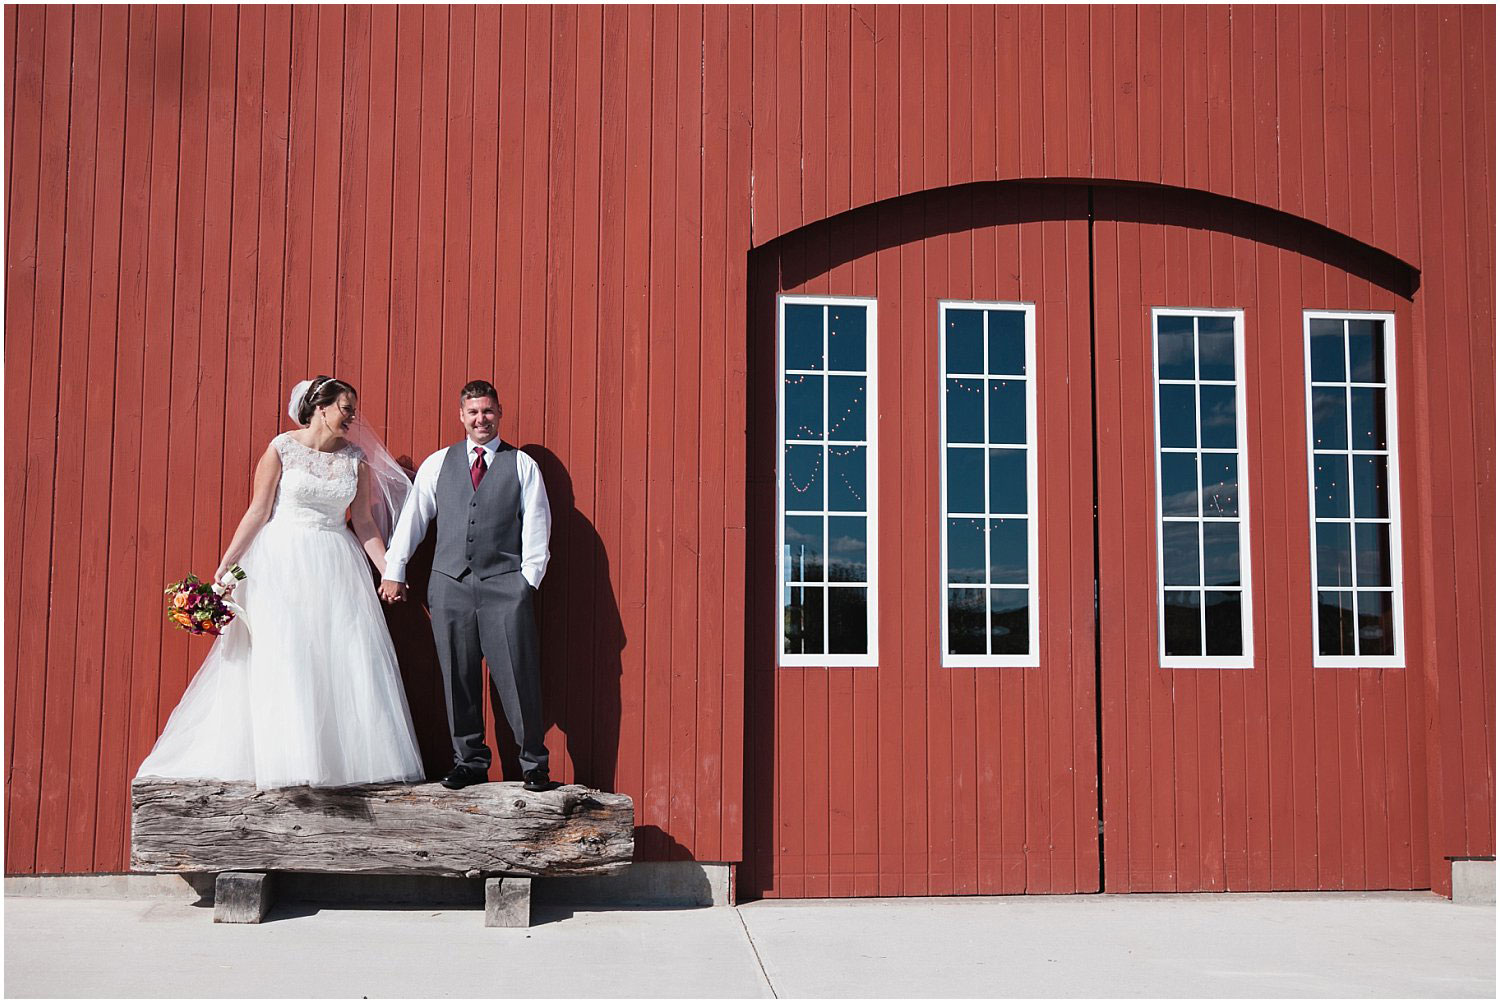 Bride and Groom in front of the red barn at a wedding at Allen Hill Farm in Brooklyn, Connecticut taken by Nicole Chaput Photography